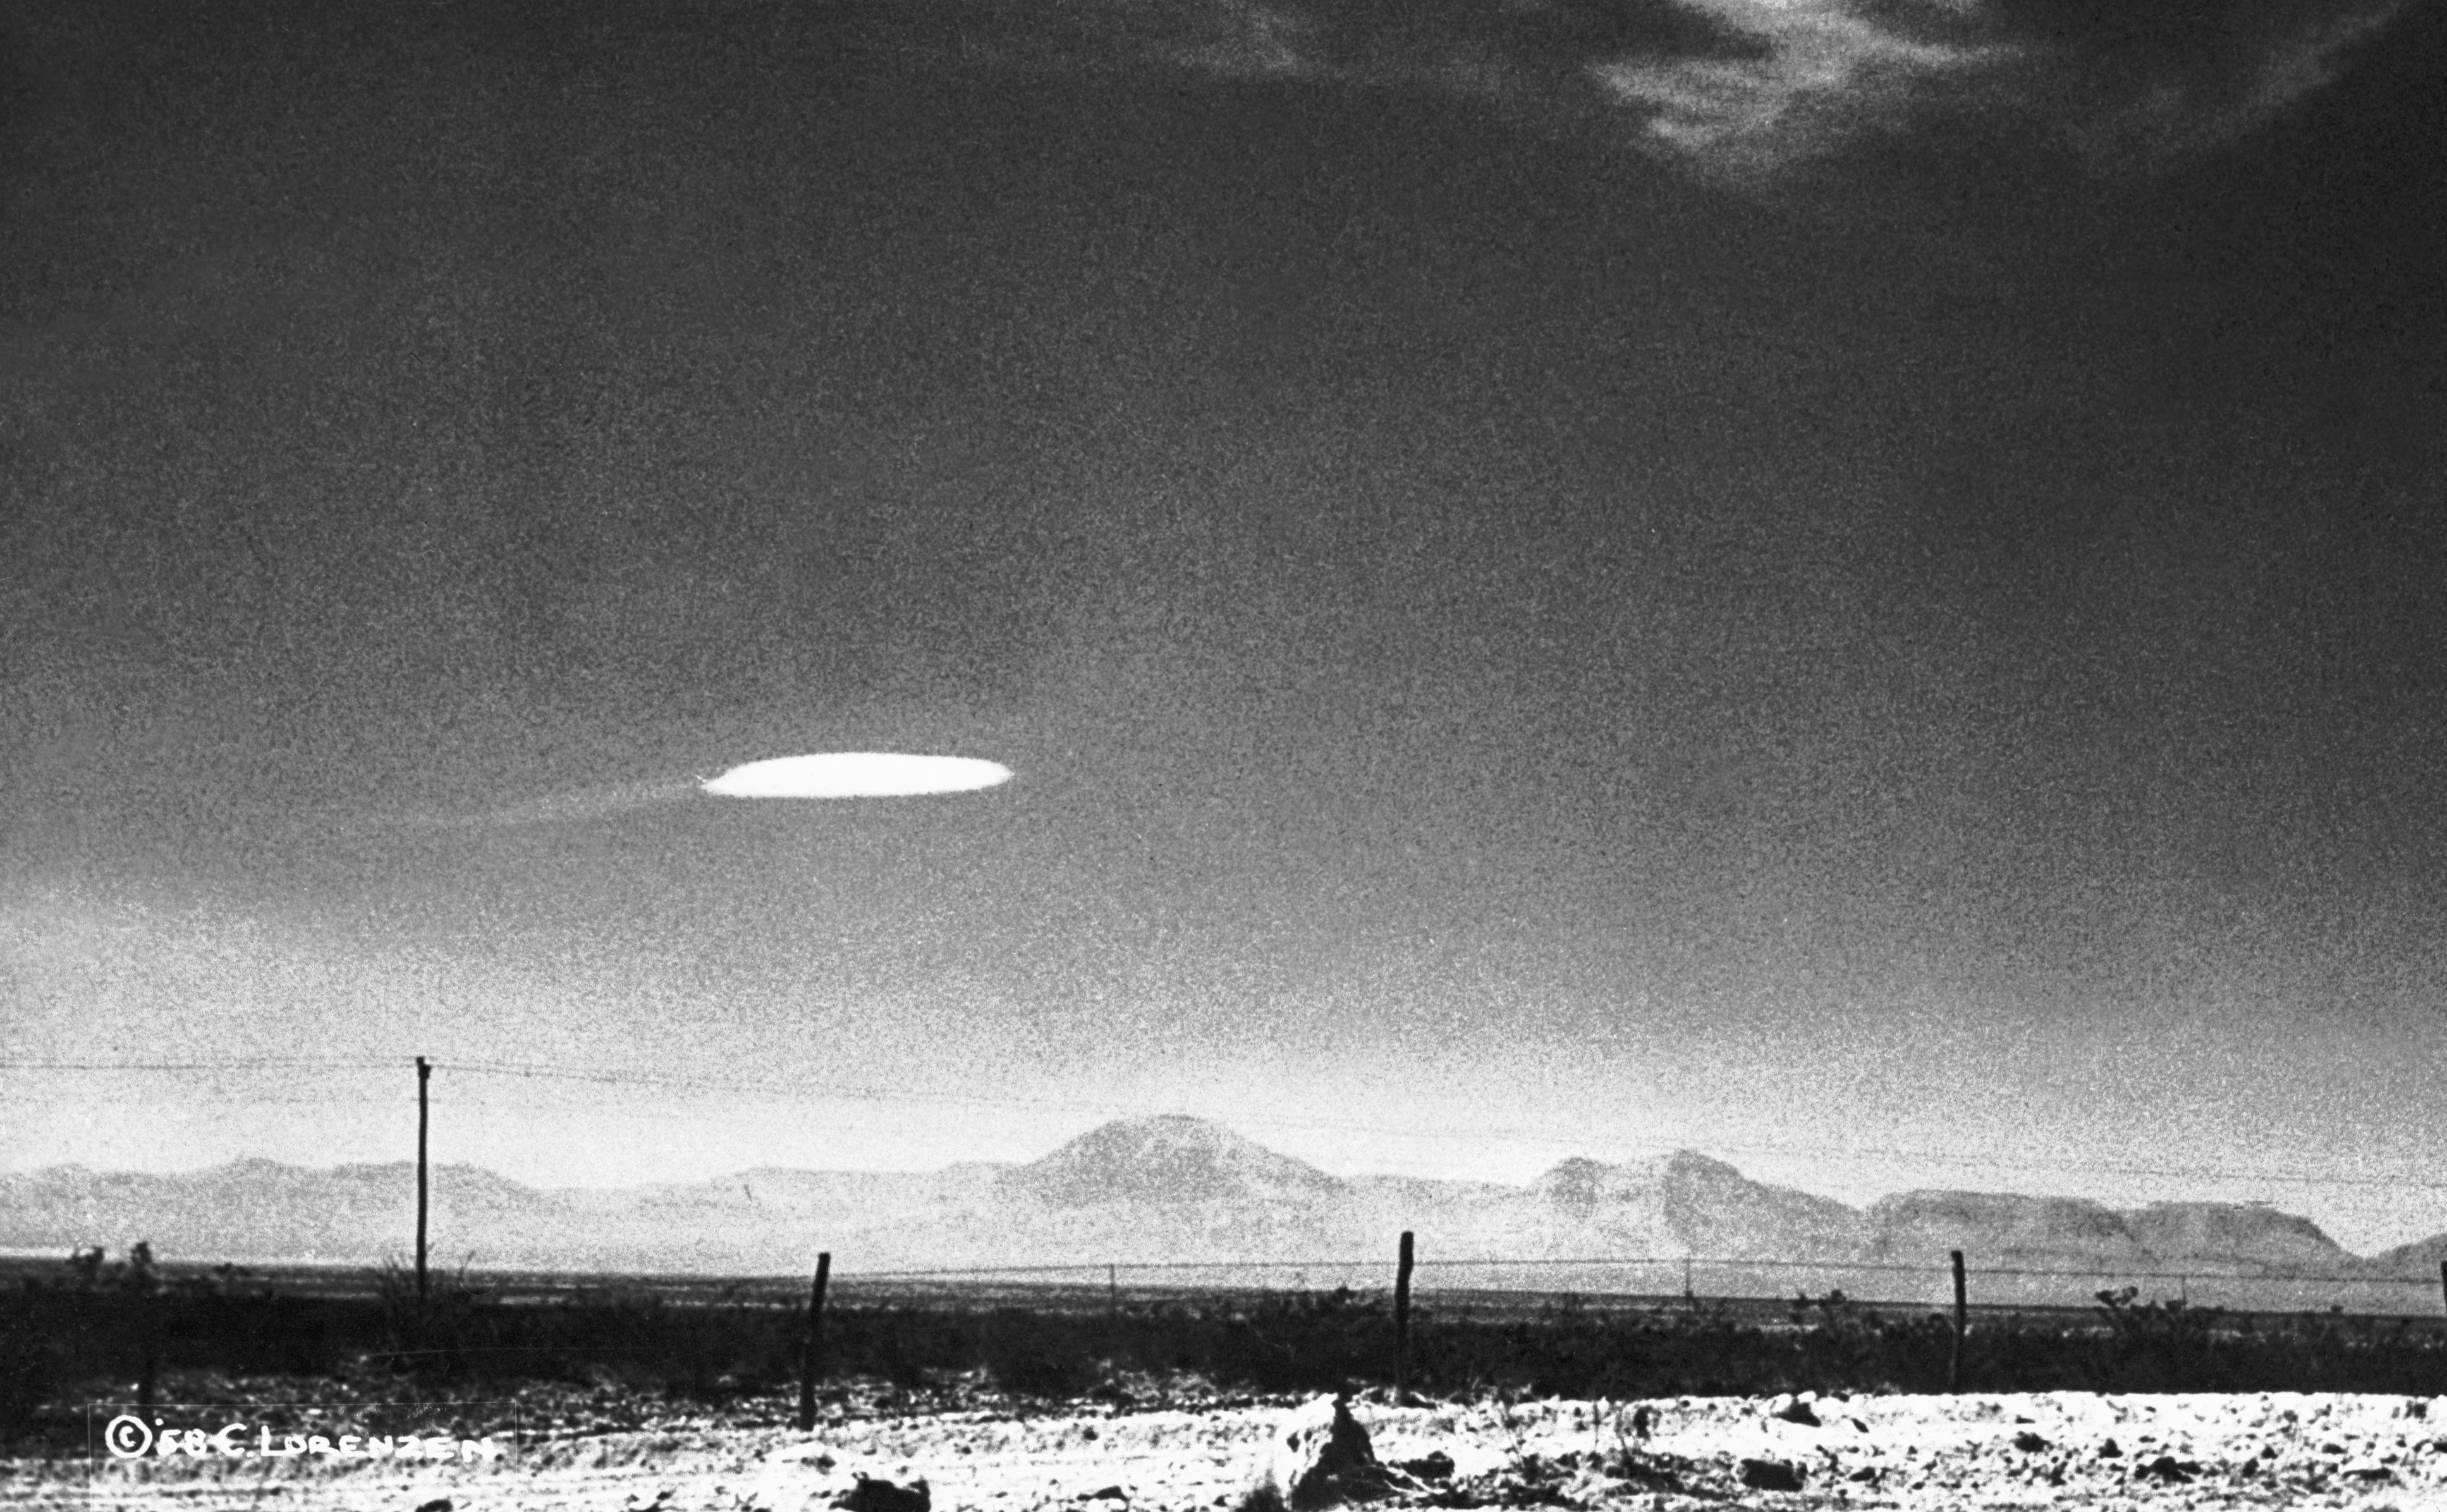 The Most Mysterious UFO Cases of All Time